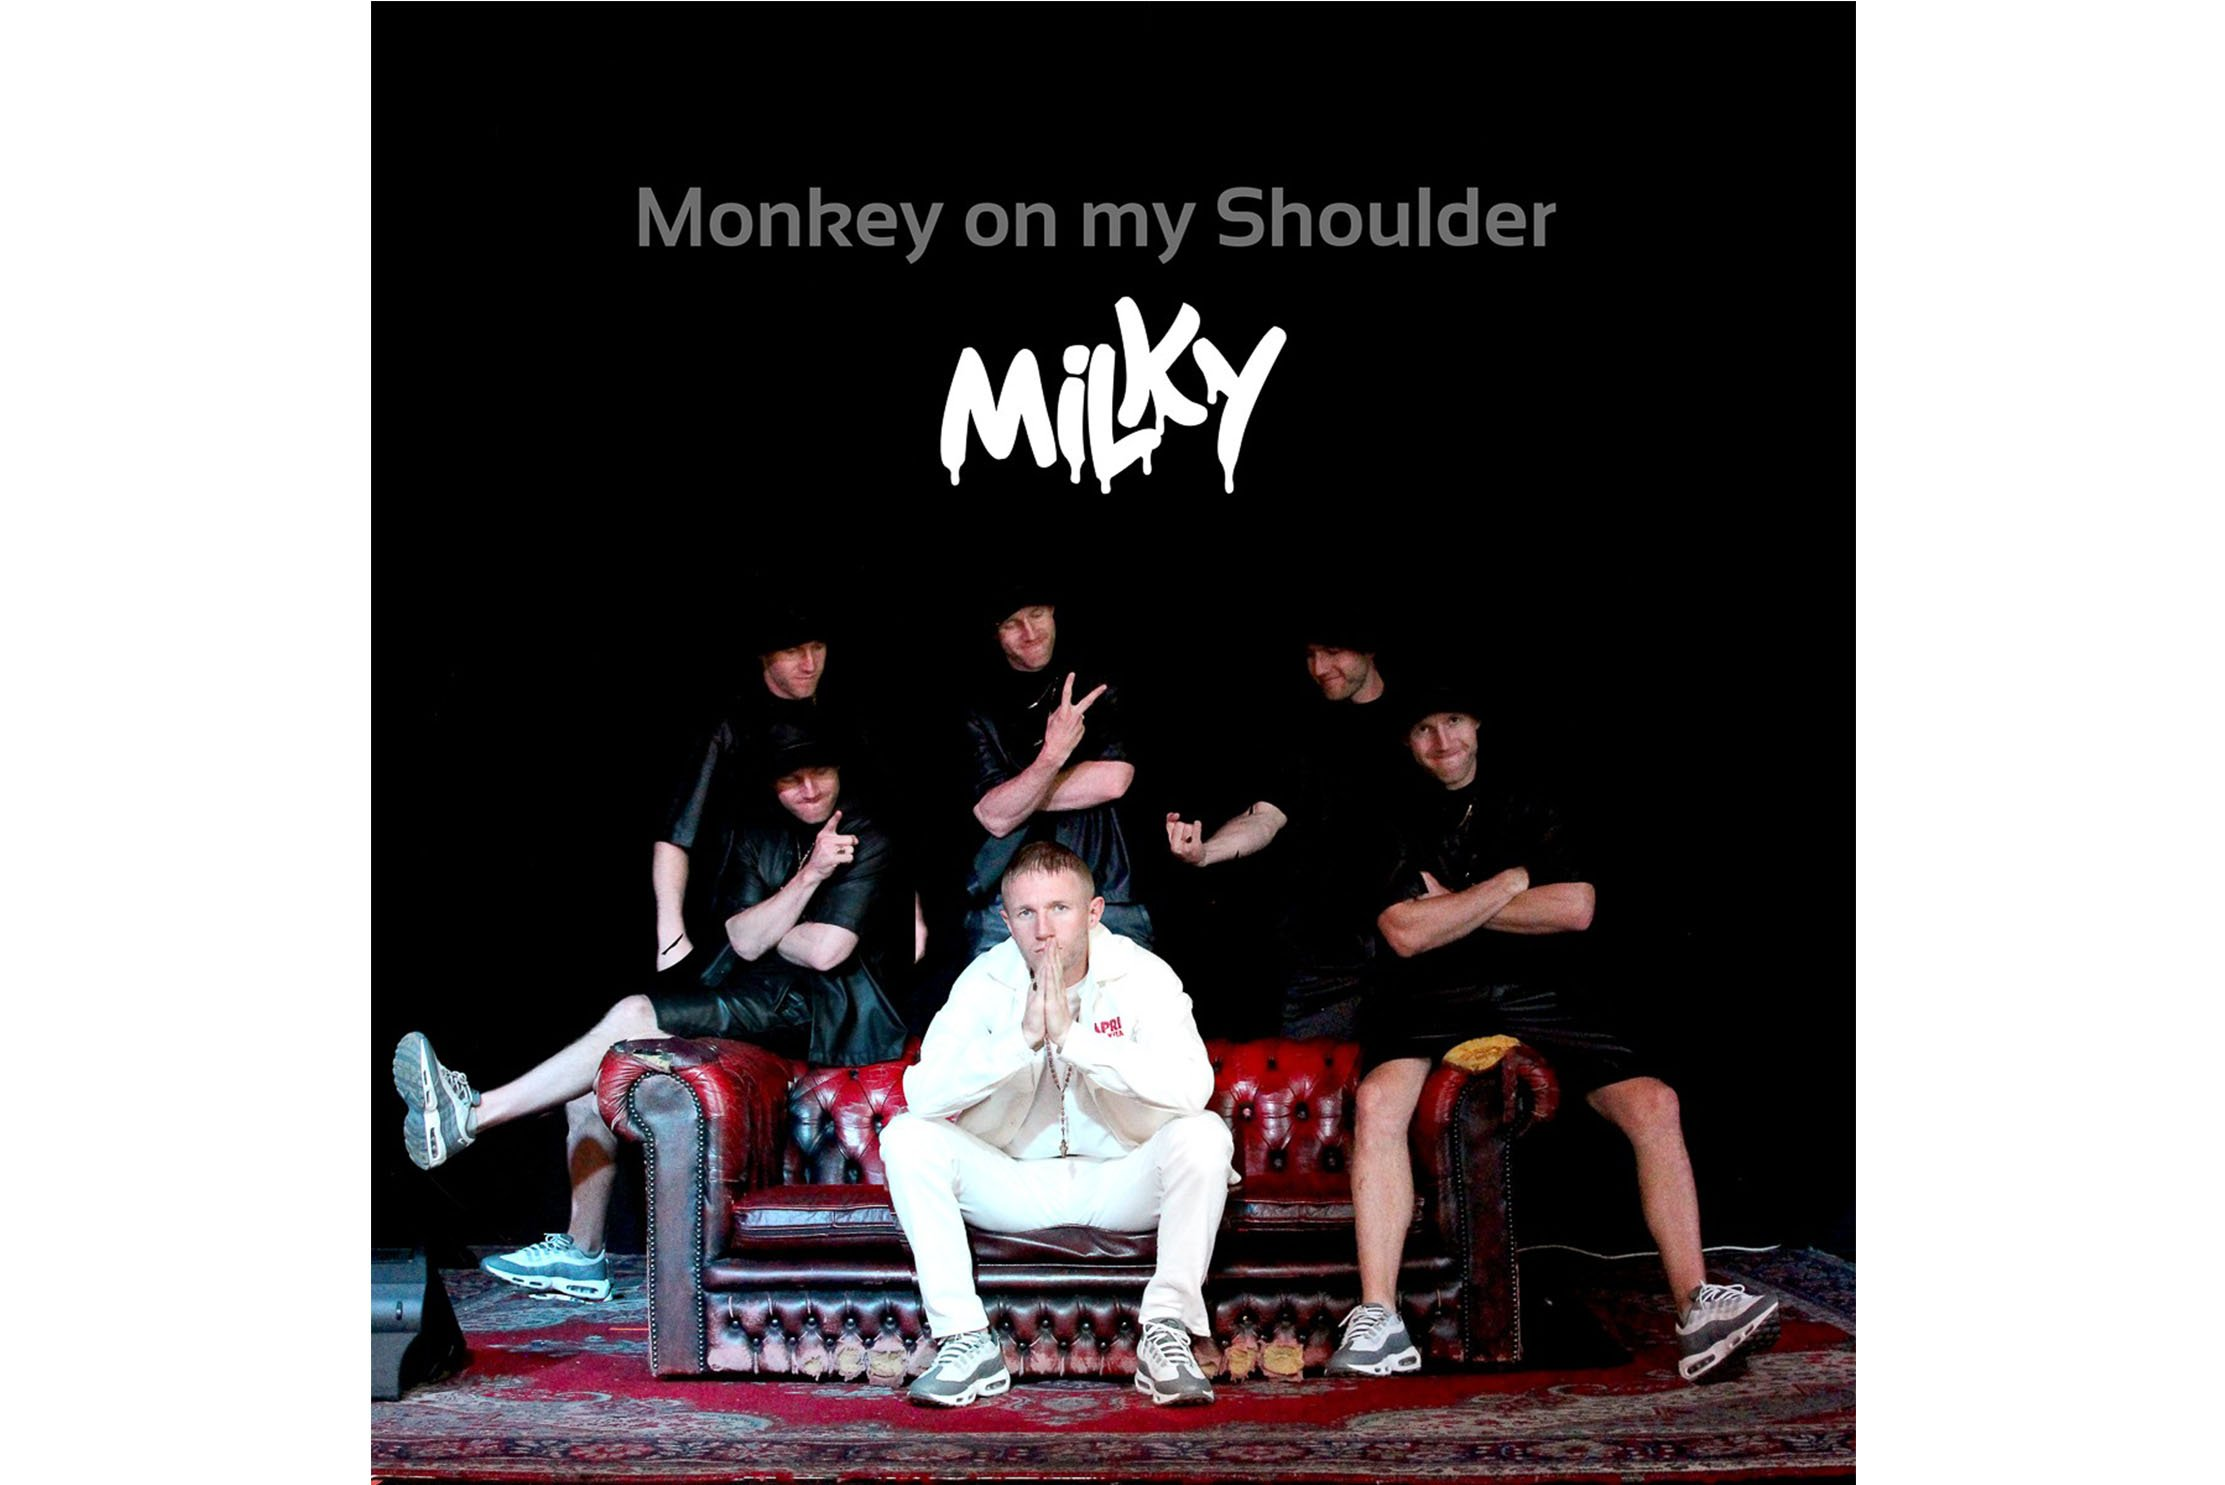 Brighton Hip-Hop artist Milky has released his new single, Monkey on My Shoulder, which shares the reality of living with addiction